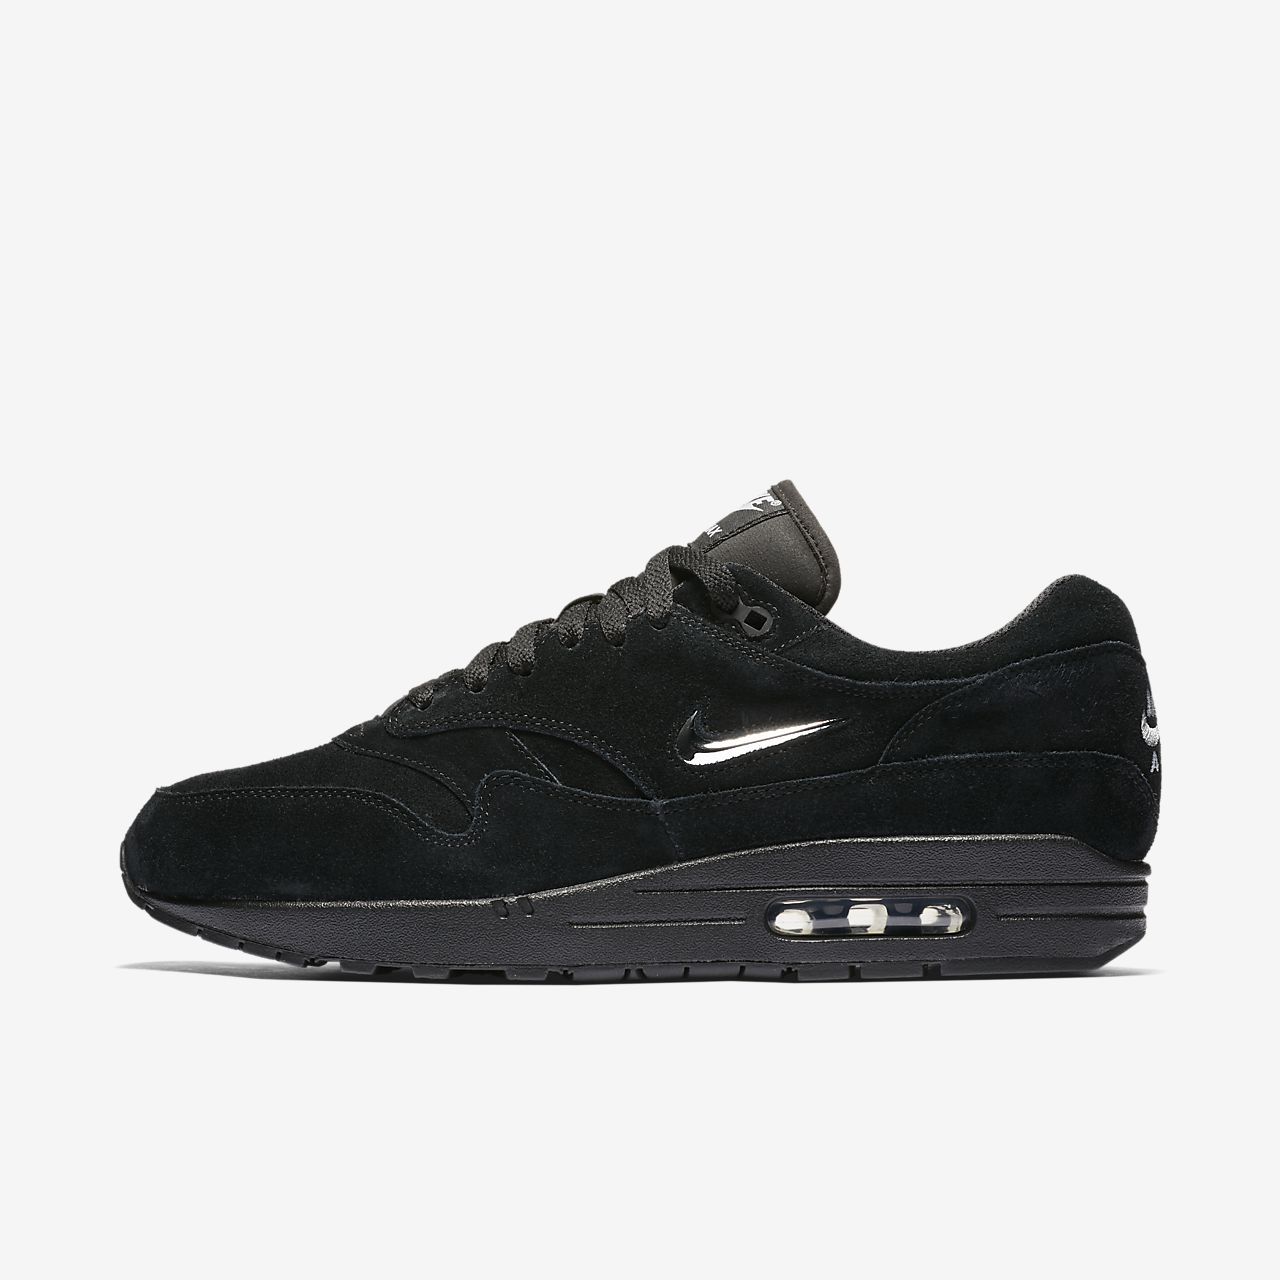 design intemporel 69df2 1b4f9 Nike Air Max 1 Premium : Buy Nike Sneakers & Shoes | Air ...